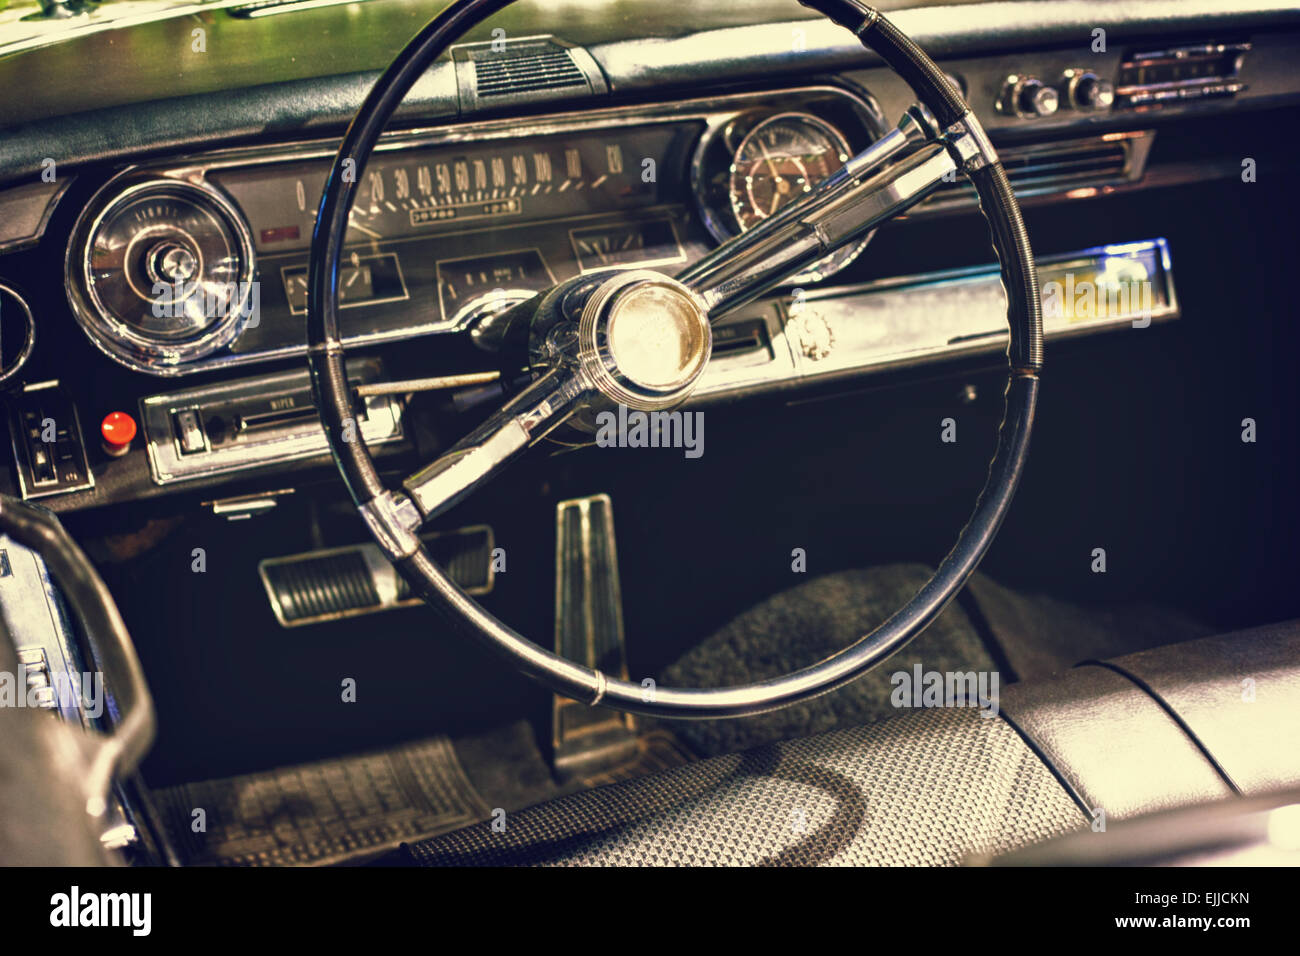 Muscle Car Wallpaper Pack Ownload Old Vintage Classic Black Car Steering Wheel And Dashboard